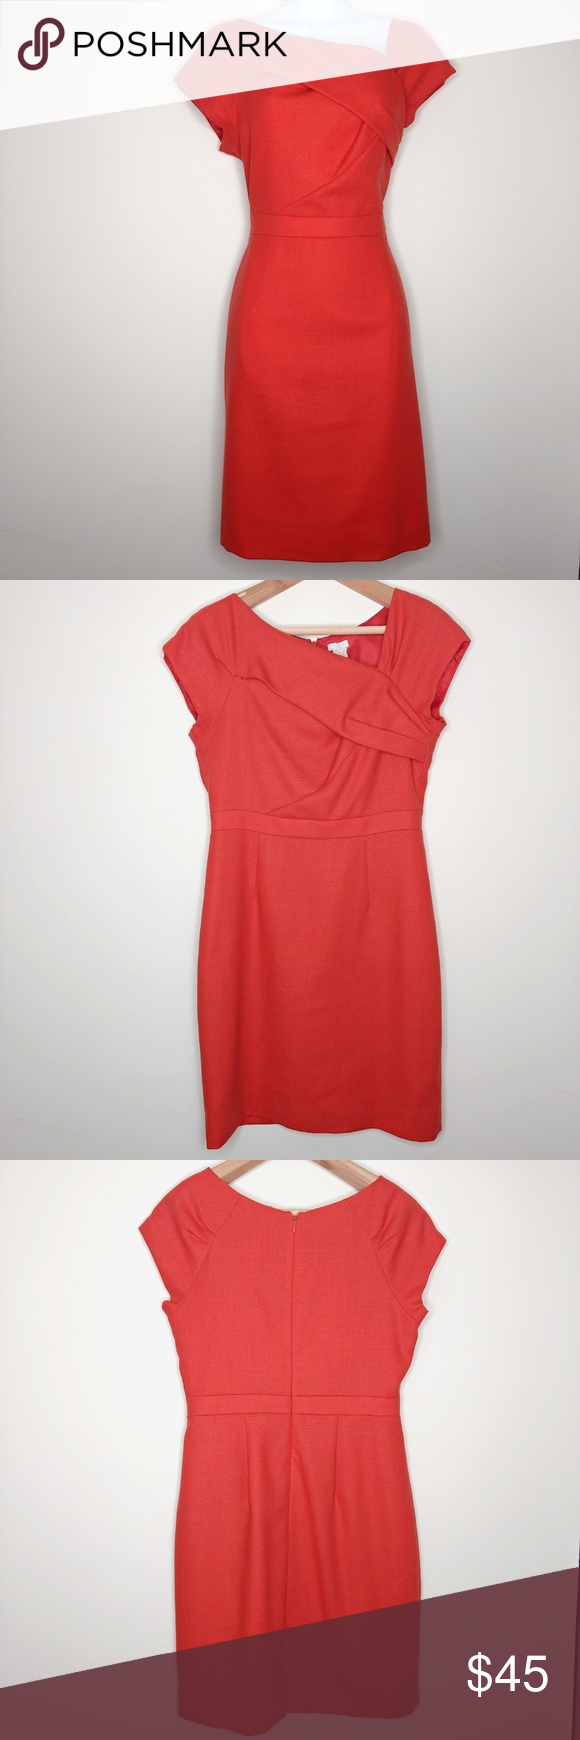 J Crew Origami Sheath Dress Red Crepe Size 8 Sheath Dress Red Dress Clothes Design